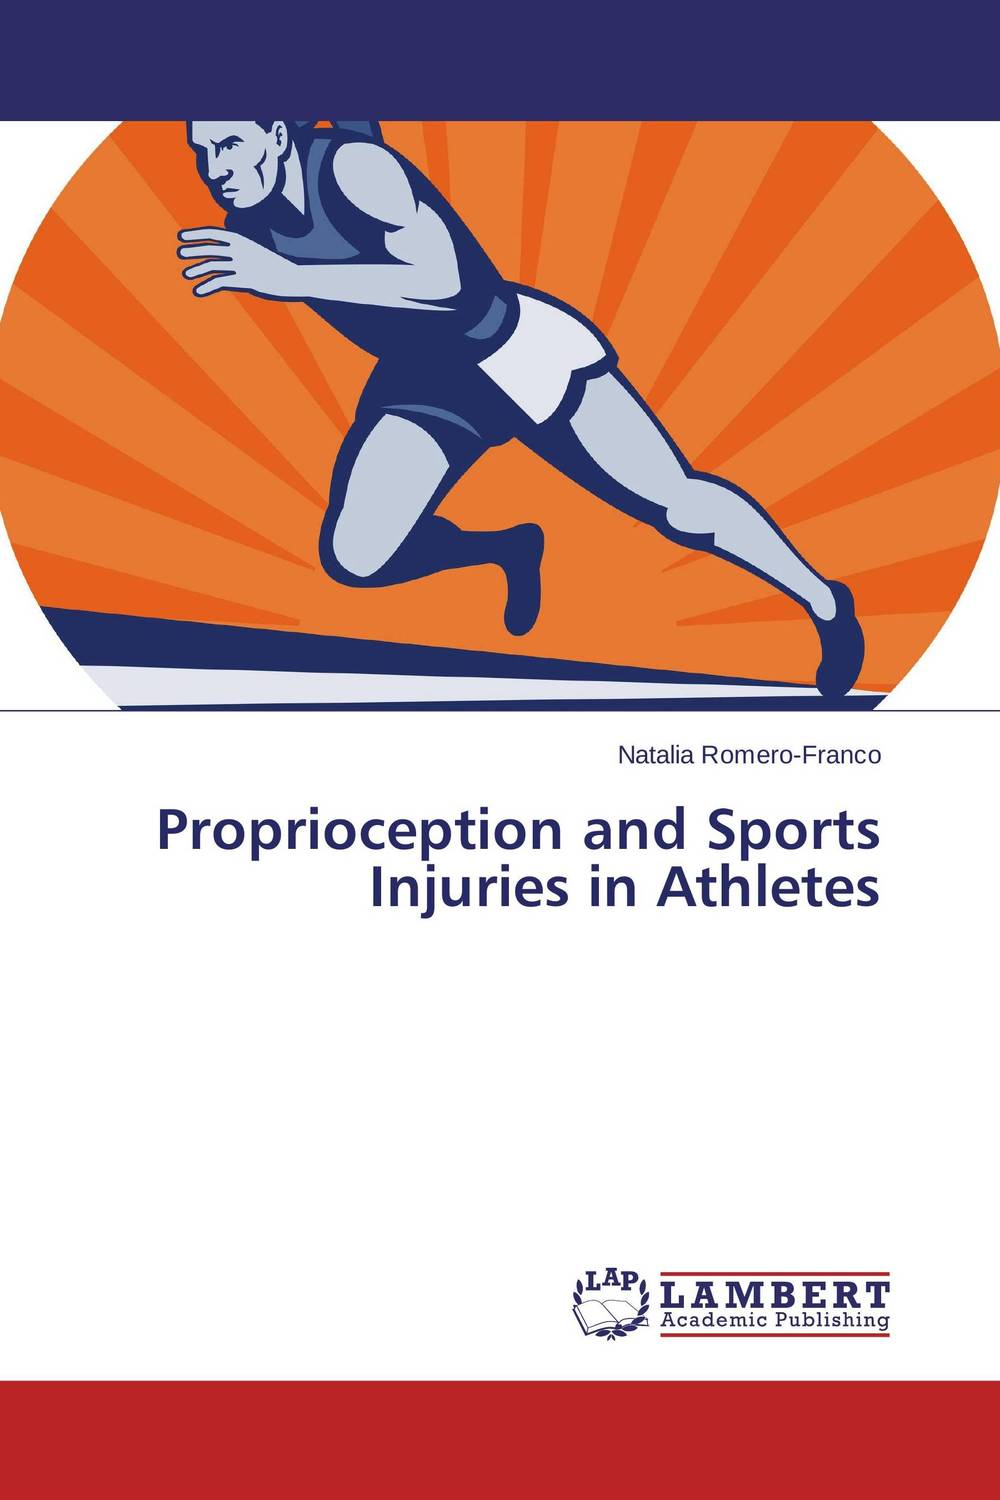 Proprioception and Sports Injuries in Athletes mediox mid 7025 8gb